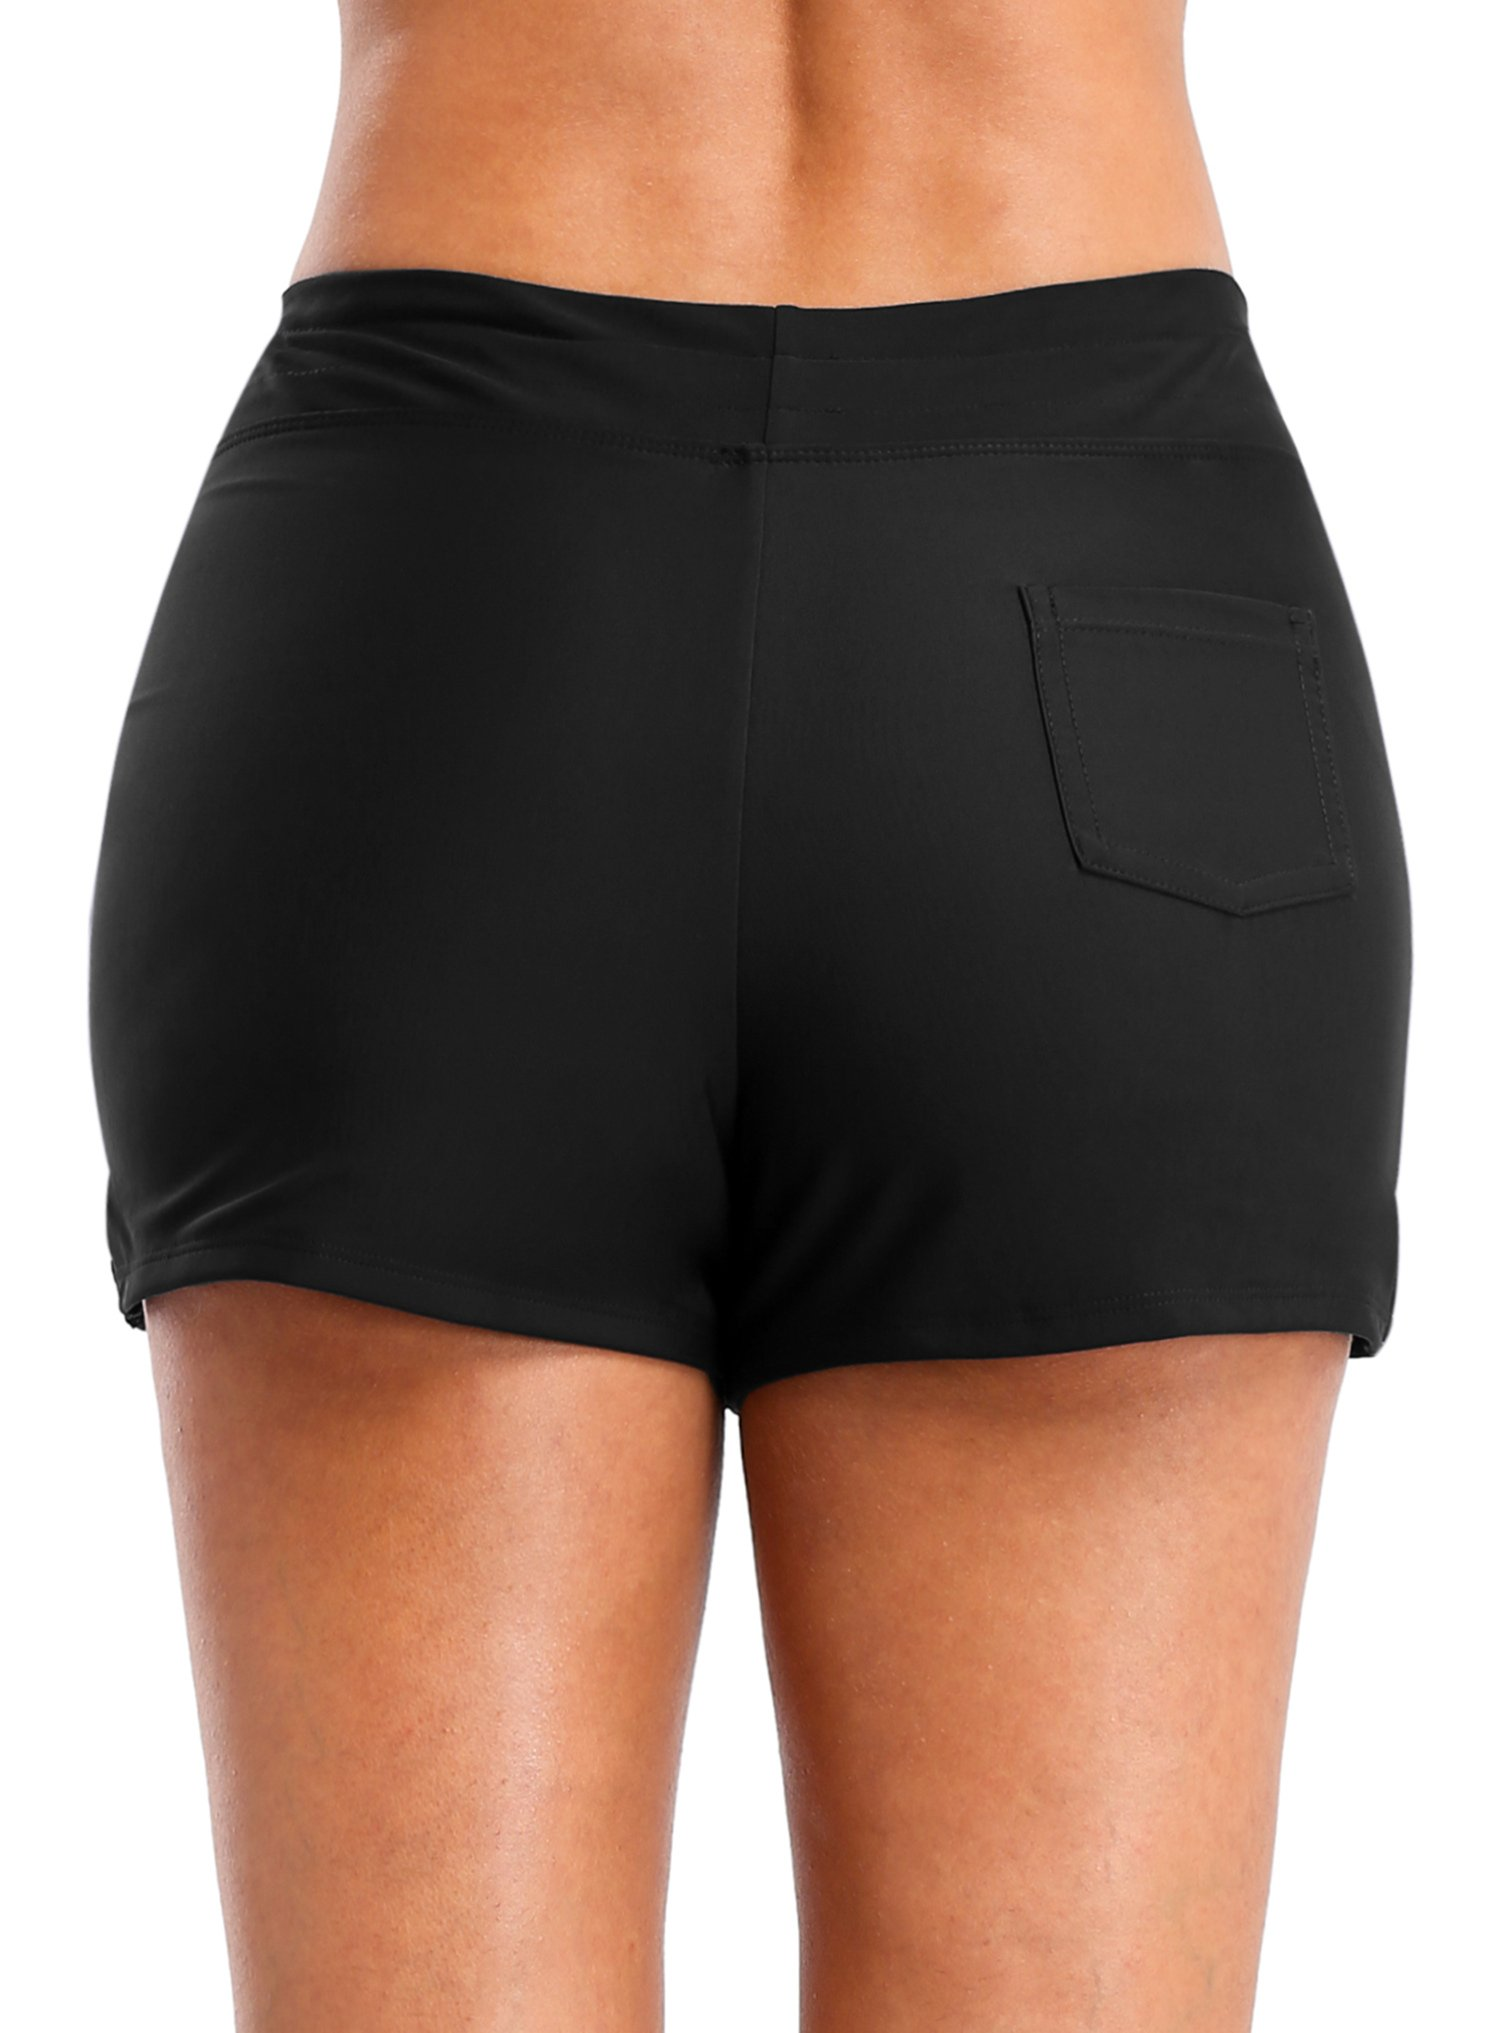 Vegatos Womens Solid Boardshorts Swimming Shorts Swim Bottoms Surfing Boyshorts Black by Vegatos (Image #5)